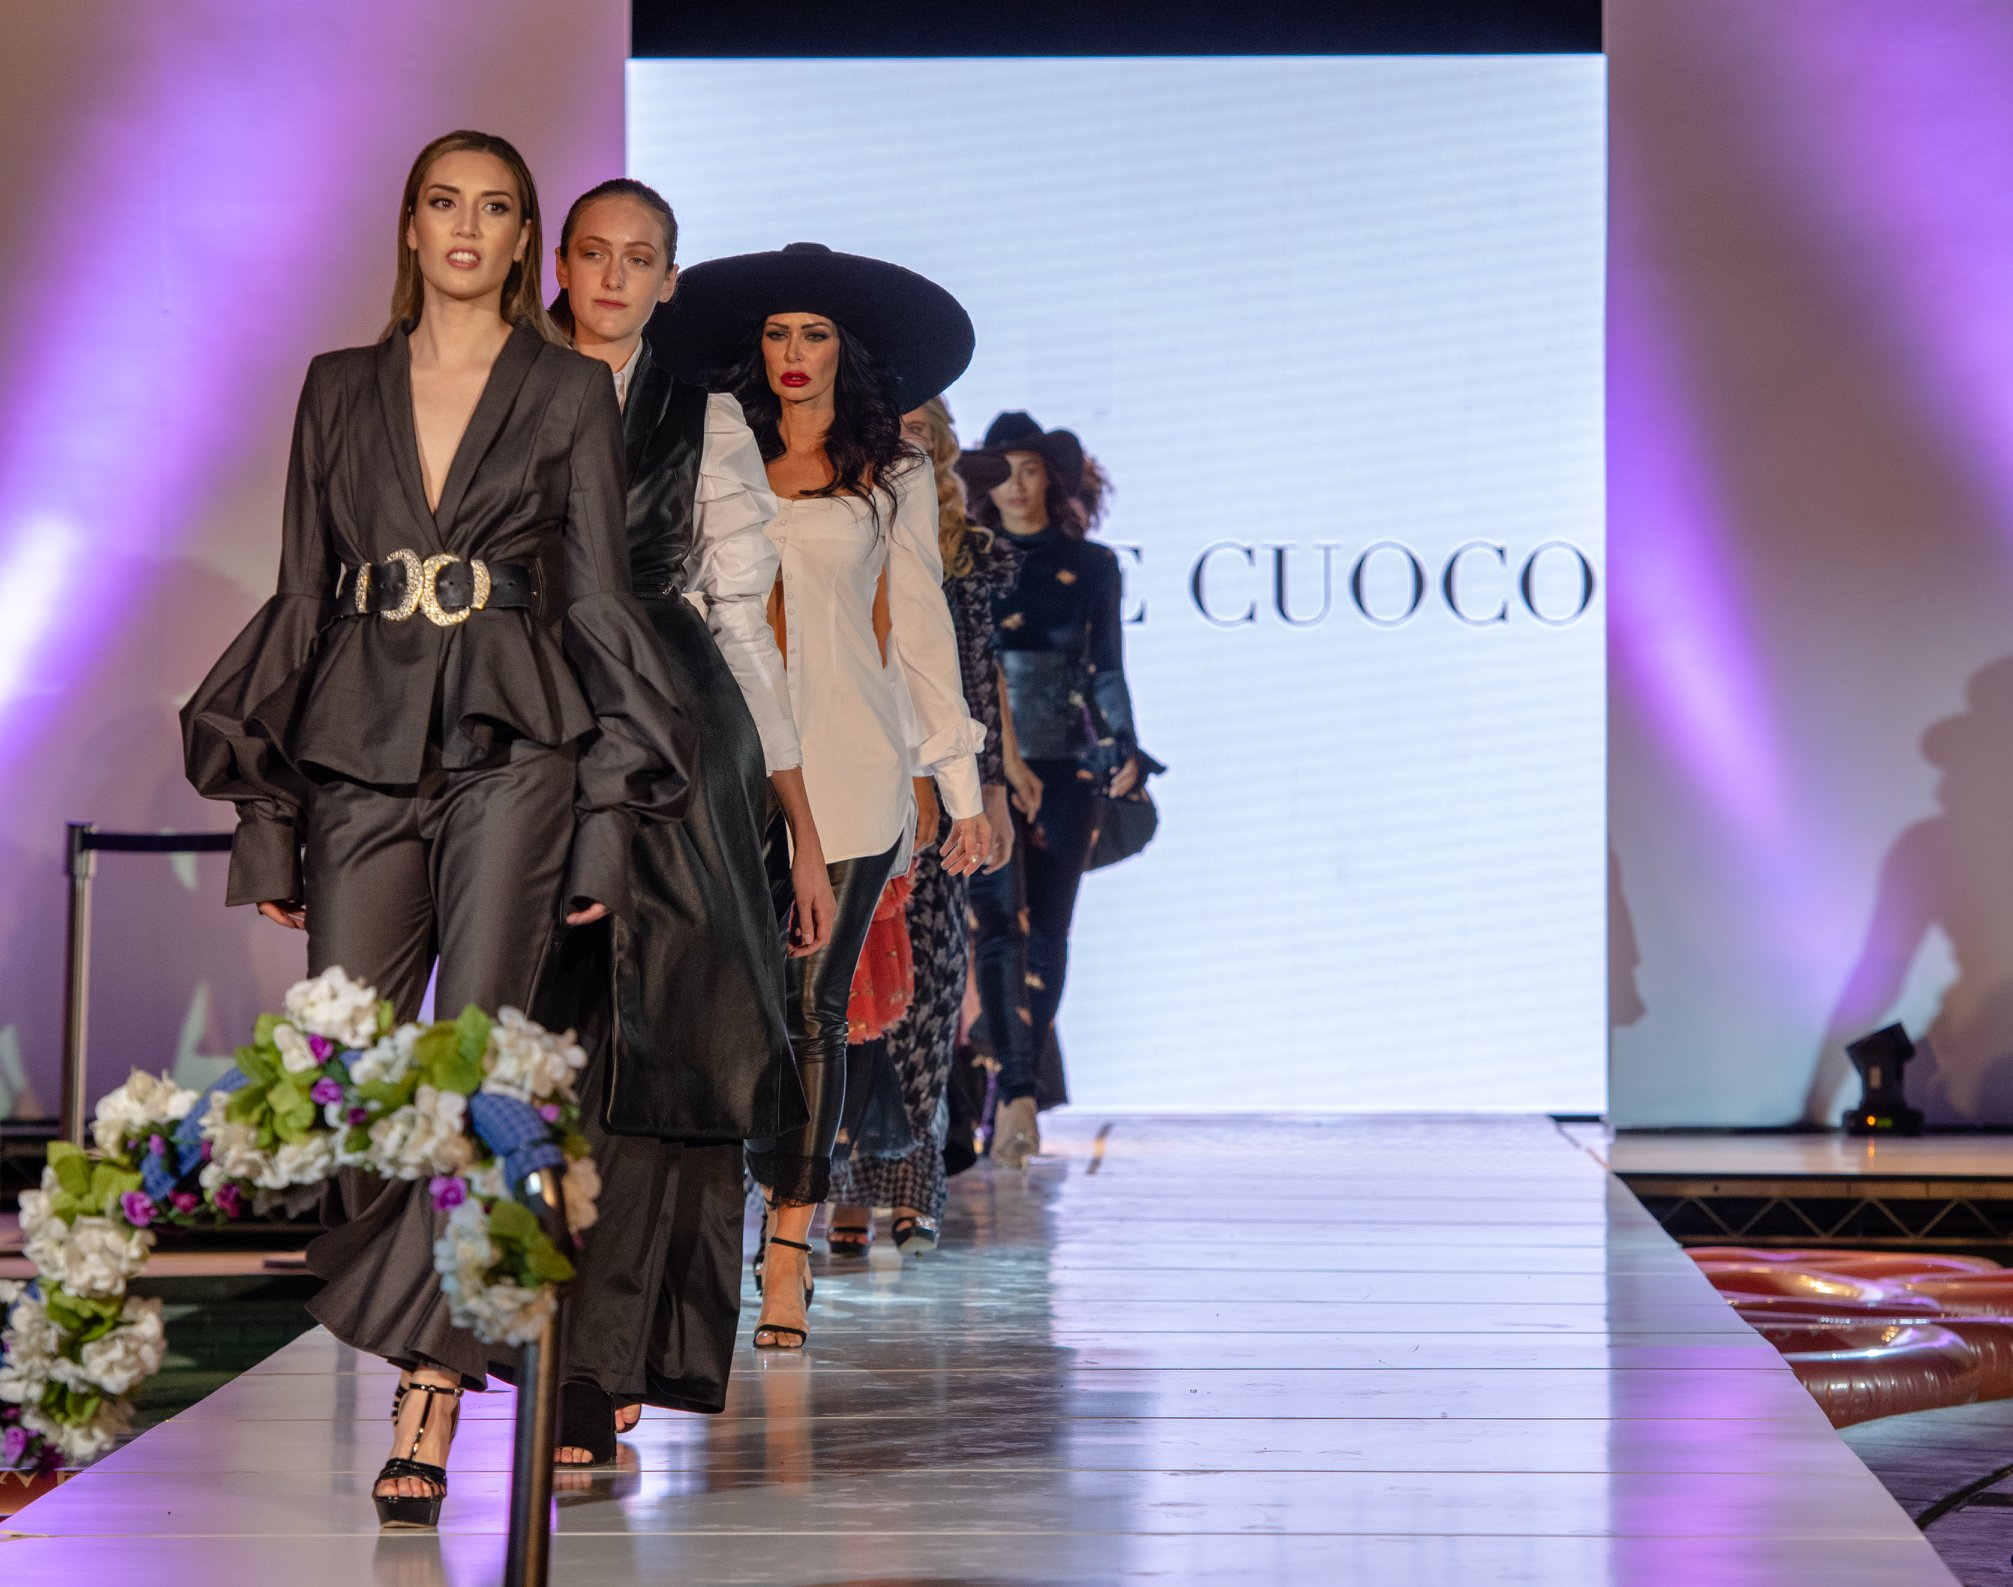 2a104224d38f9 Palm Springs Fashion Week Showcases the world's top designers — PALM ...